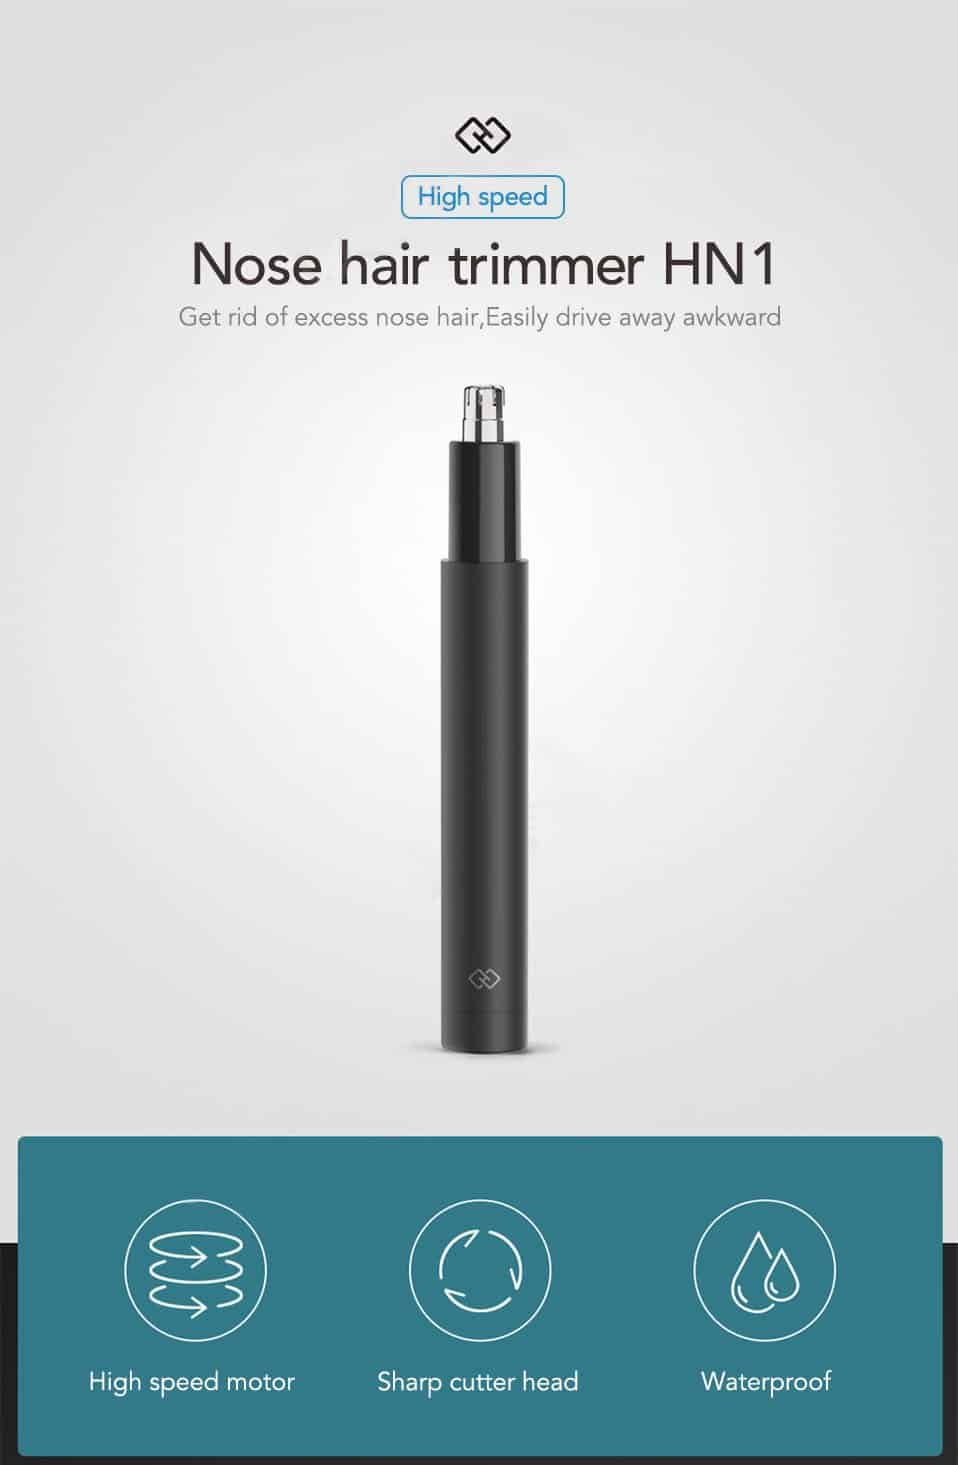 Xiaomi Nose Hair Trimmer Review